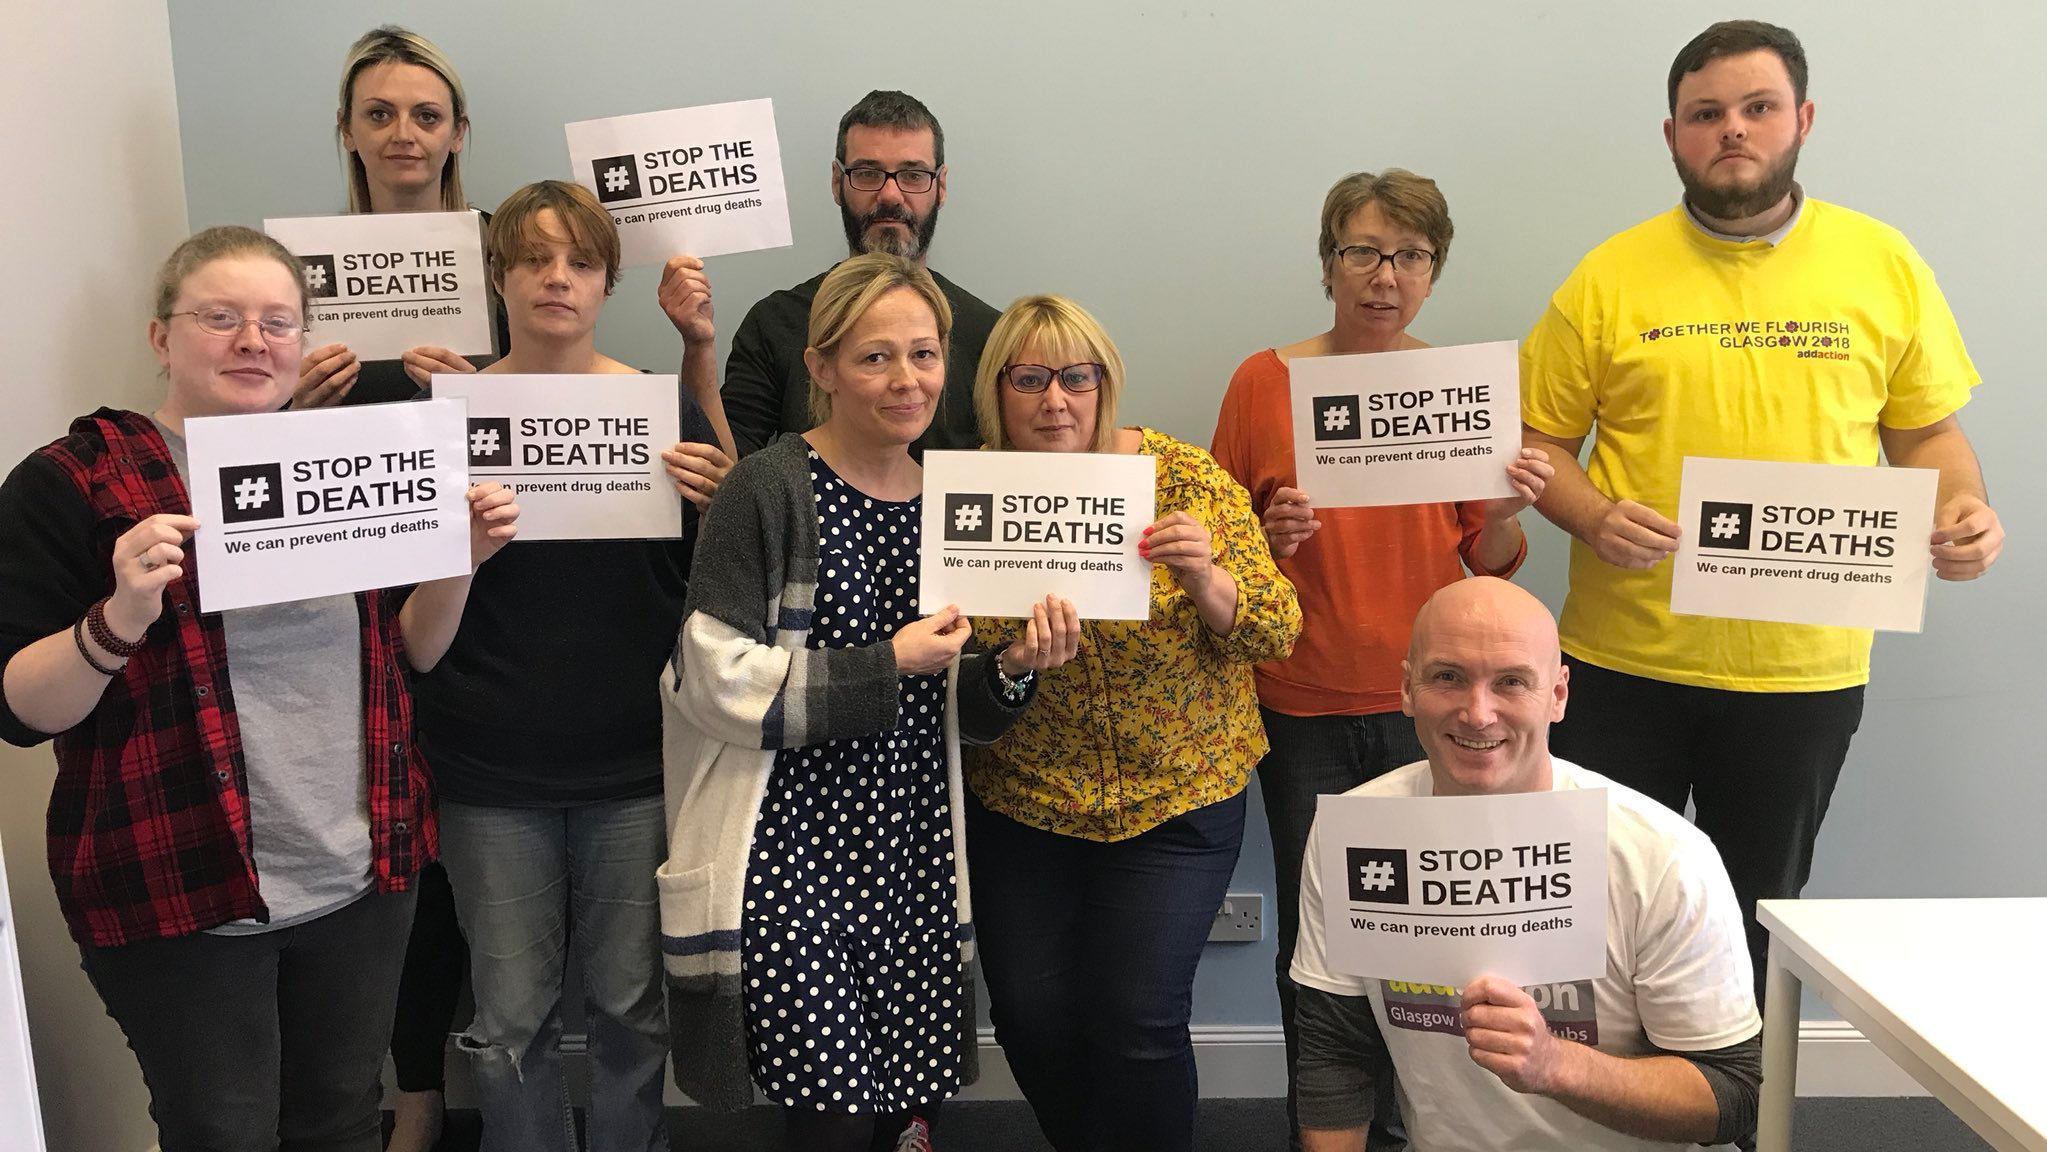 Take a picture with the logo - Join our online gallery of support by printing off the #StopTheDeaths logo and sharing a picture.